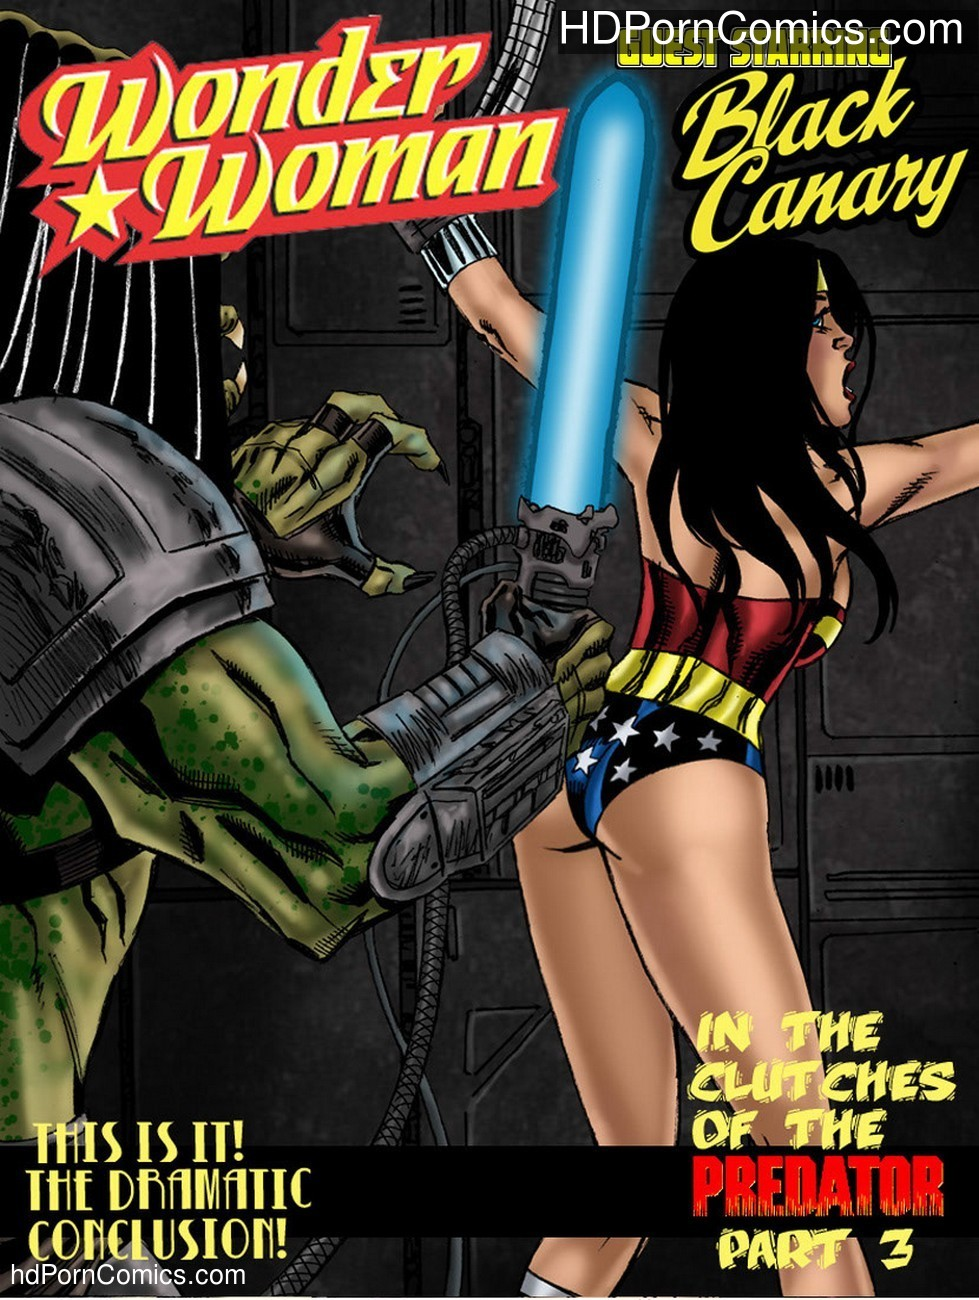 Wonder Woman – In The Clutches Of The Predator 3 Sex Comic